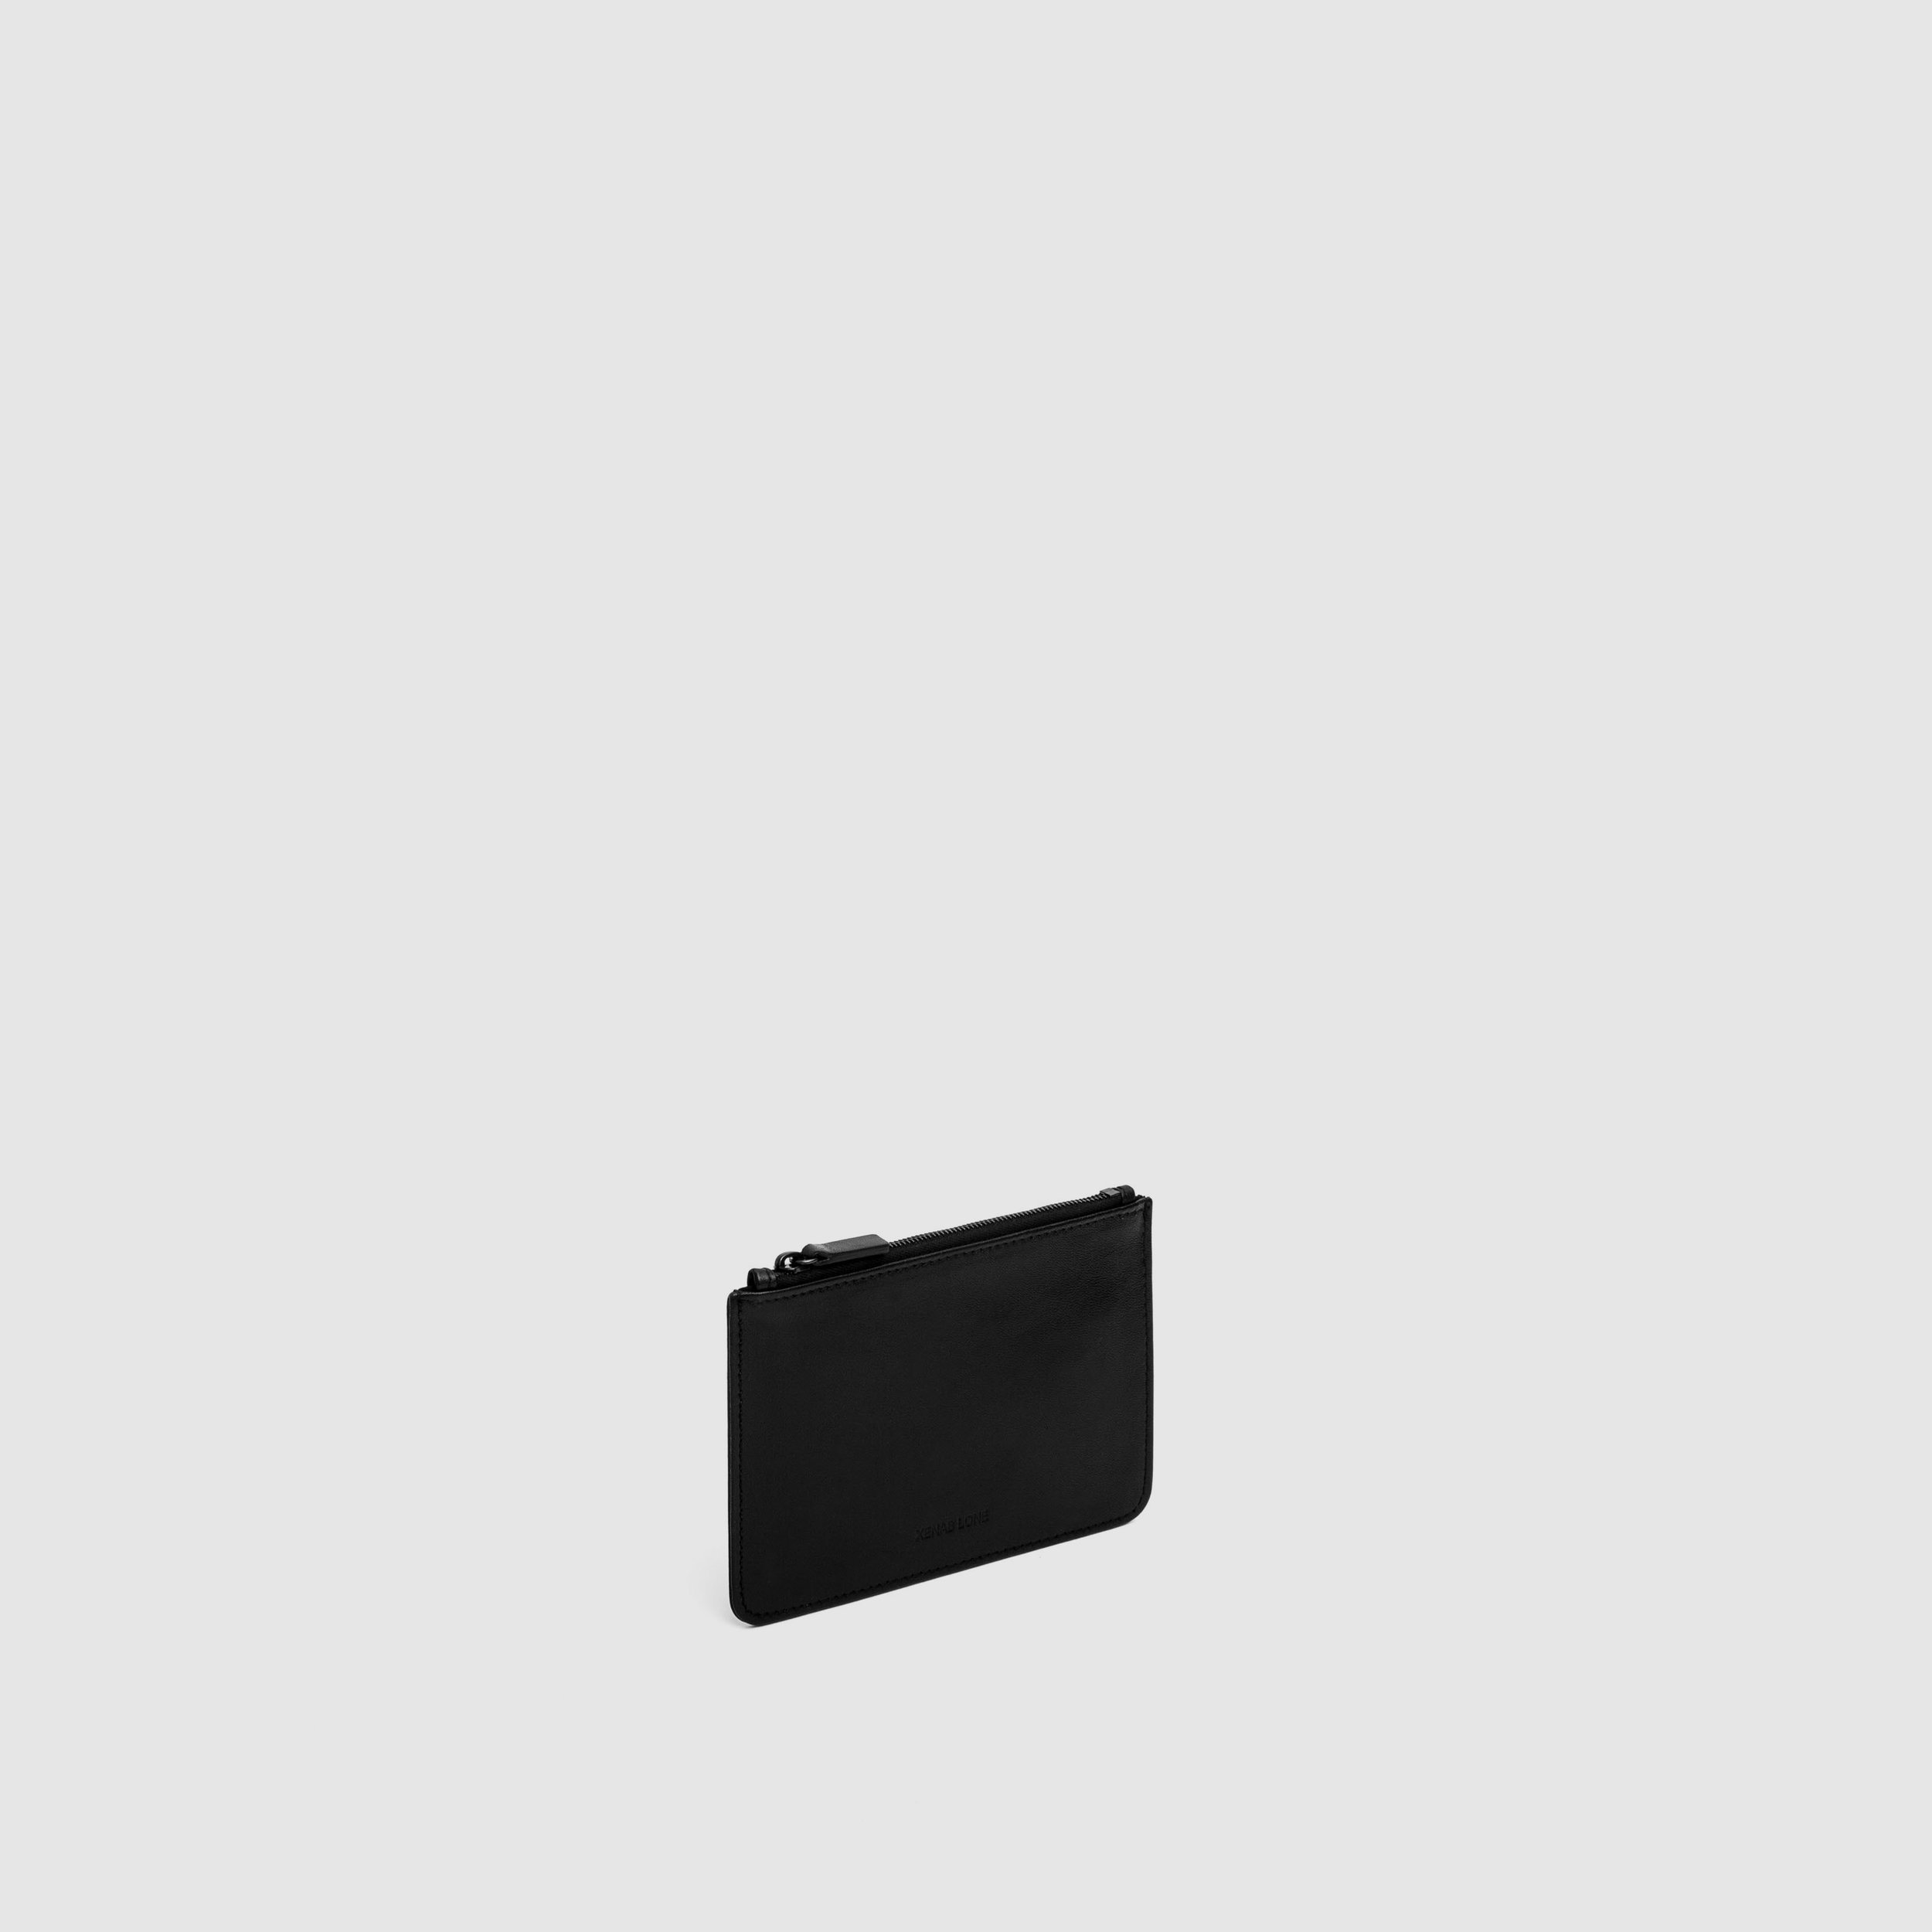 Wallets&Pouches_0002s_0001s_0005_Layer 21.jpg